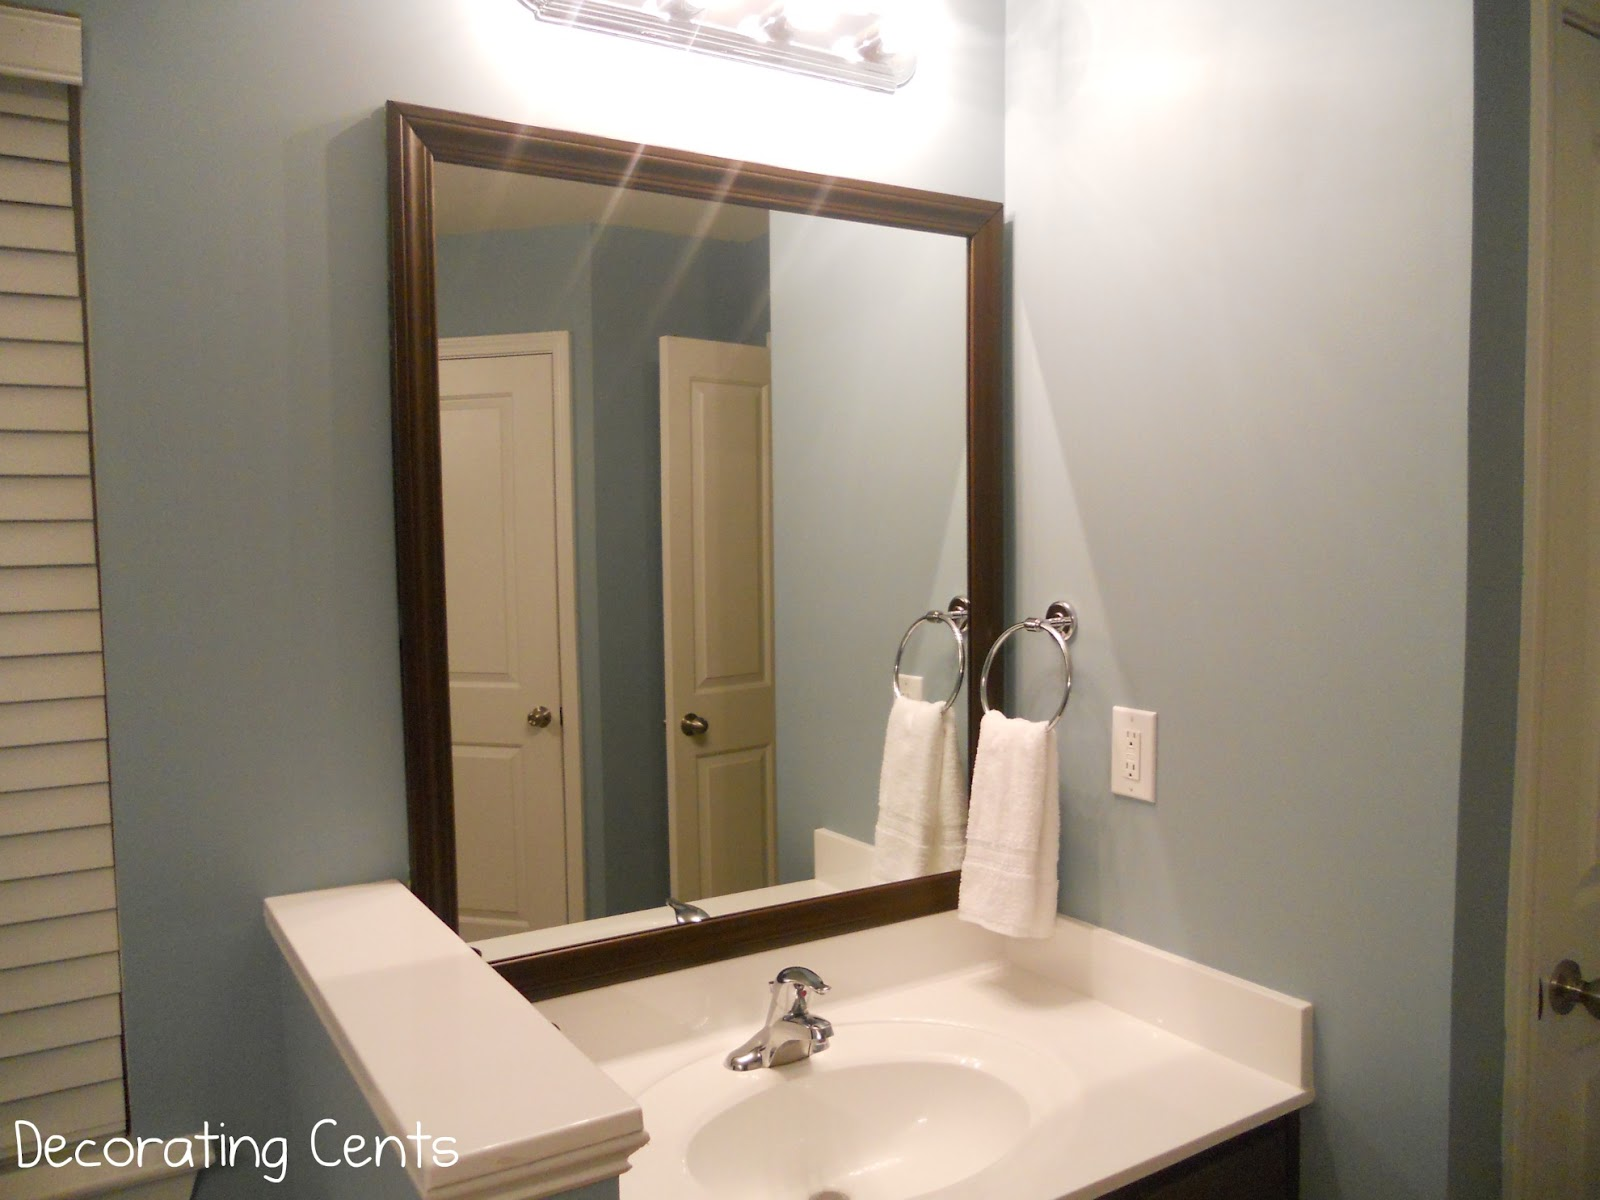 Mirror In The Bathroom Impressive Decorating Cents Framing The Bathroom Mirrors Inspiration